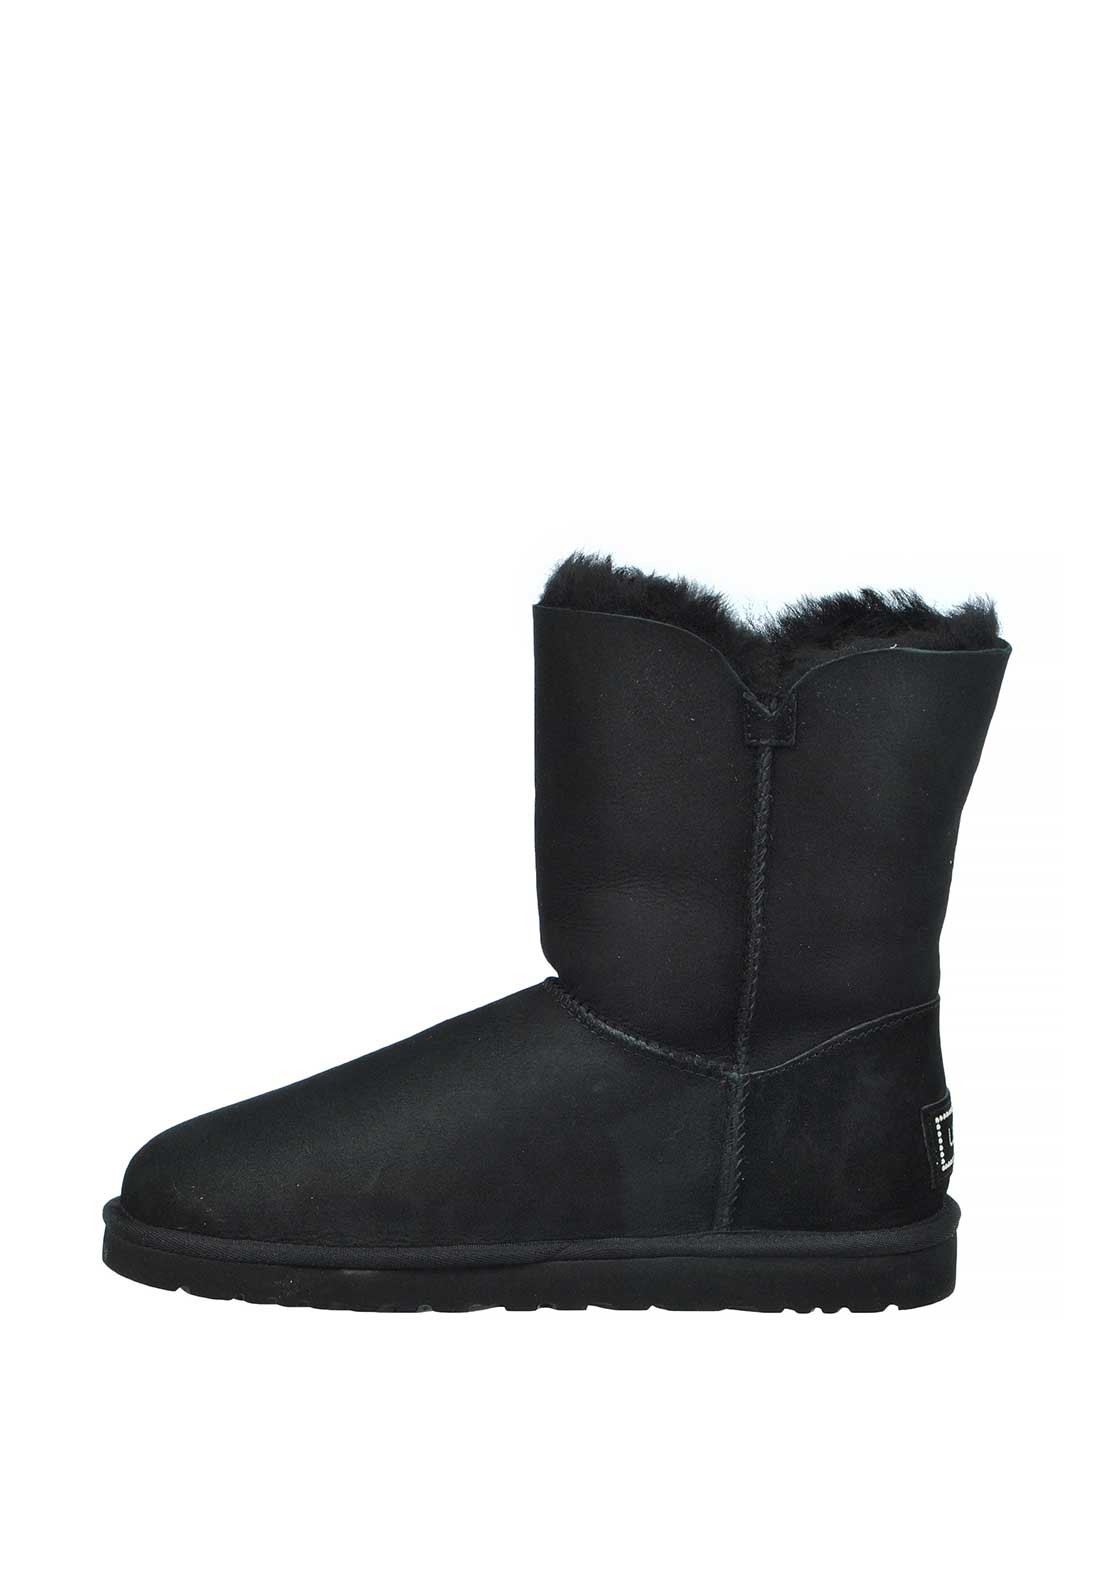 04d2d99a7f0 UGG Australia Womens Suede Bailey Bling Boots, Black